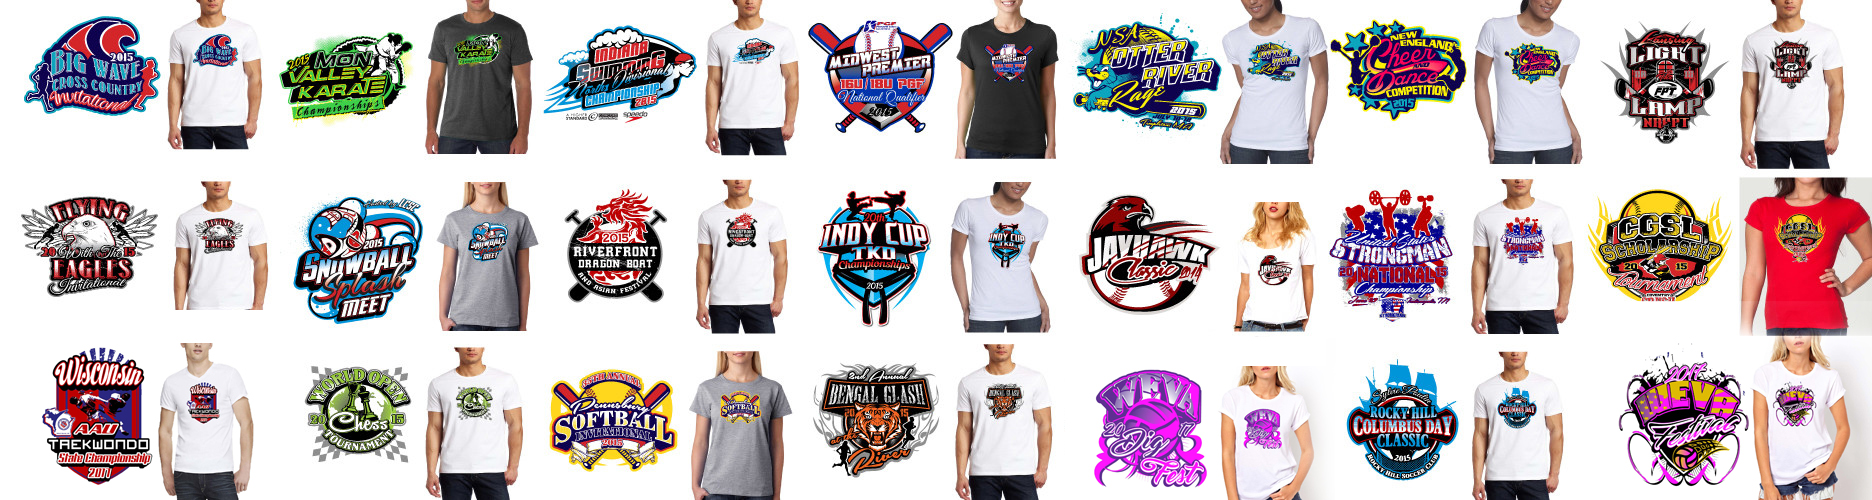 Best affordable price for an amazing and eye catching logo design. When you order your logo design you will receive your first proof within hours NOT days!